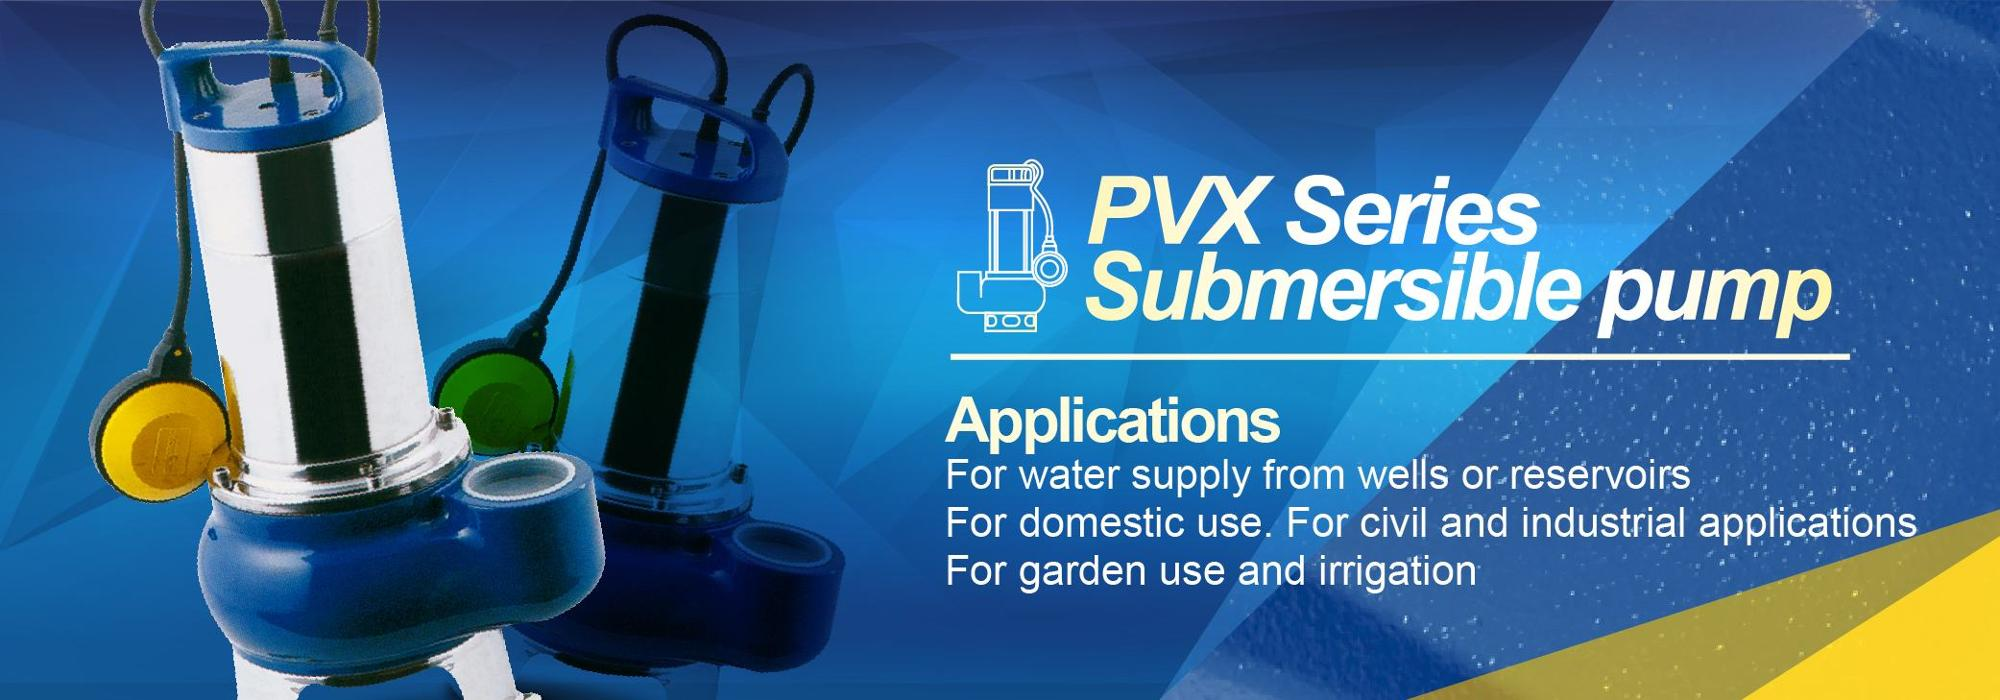 PVX Waste Water Recycle Stainless Steel Impeller Submersible Pump